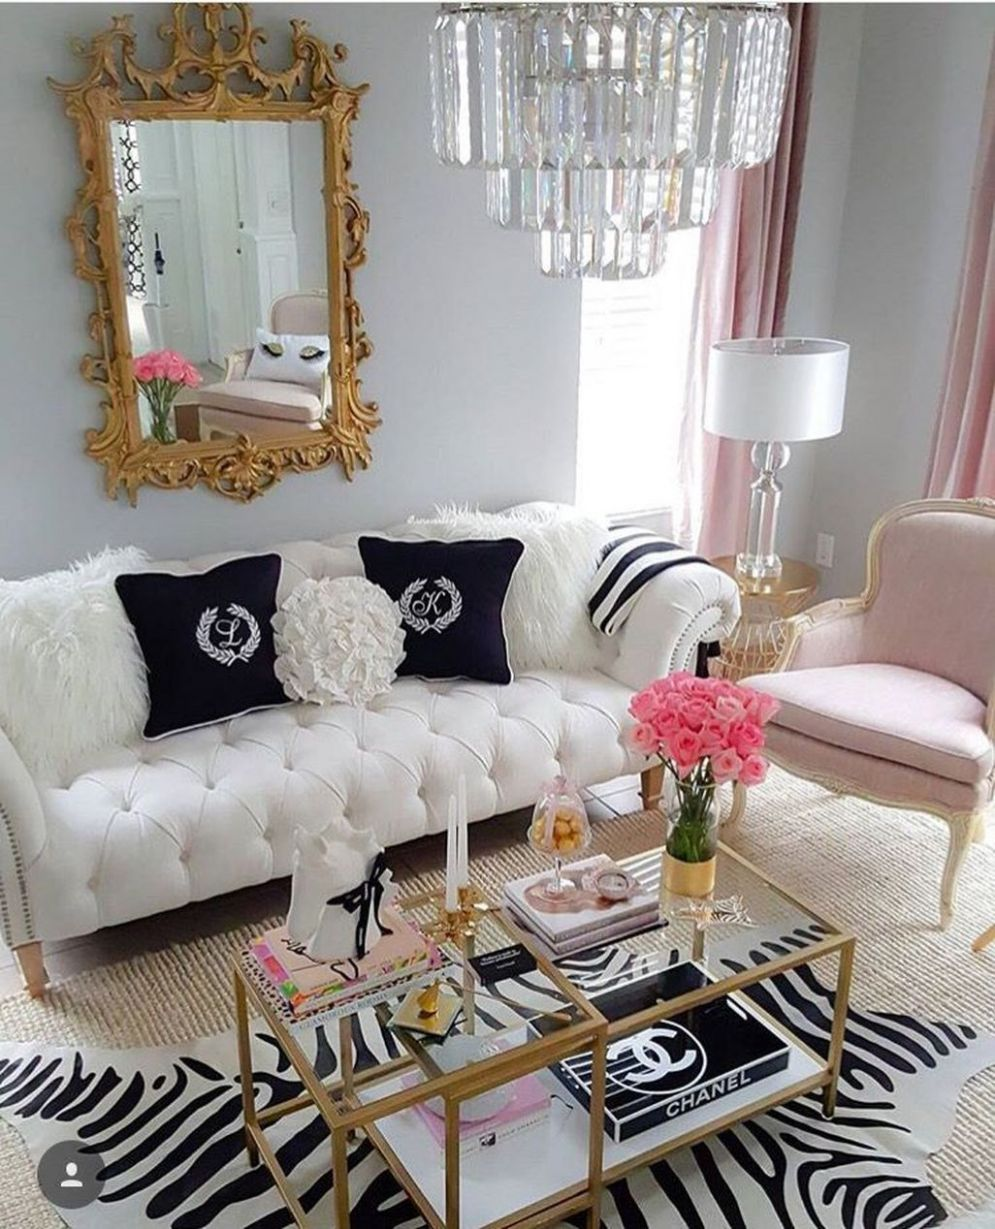 11 Cute Girly Apartment Décor Ideas in 11 | Girly apartment ..